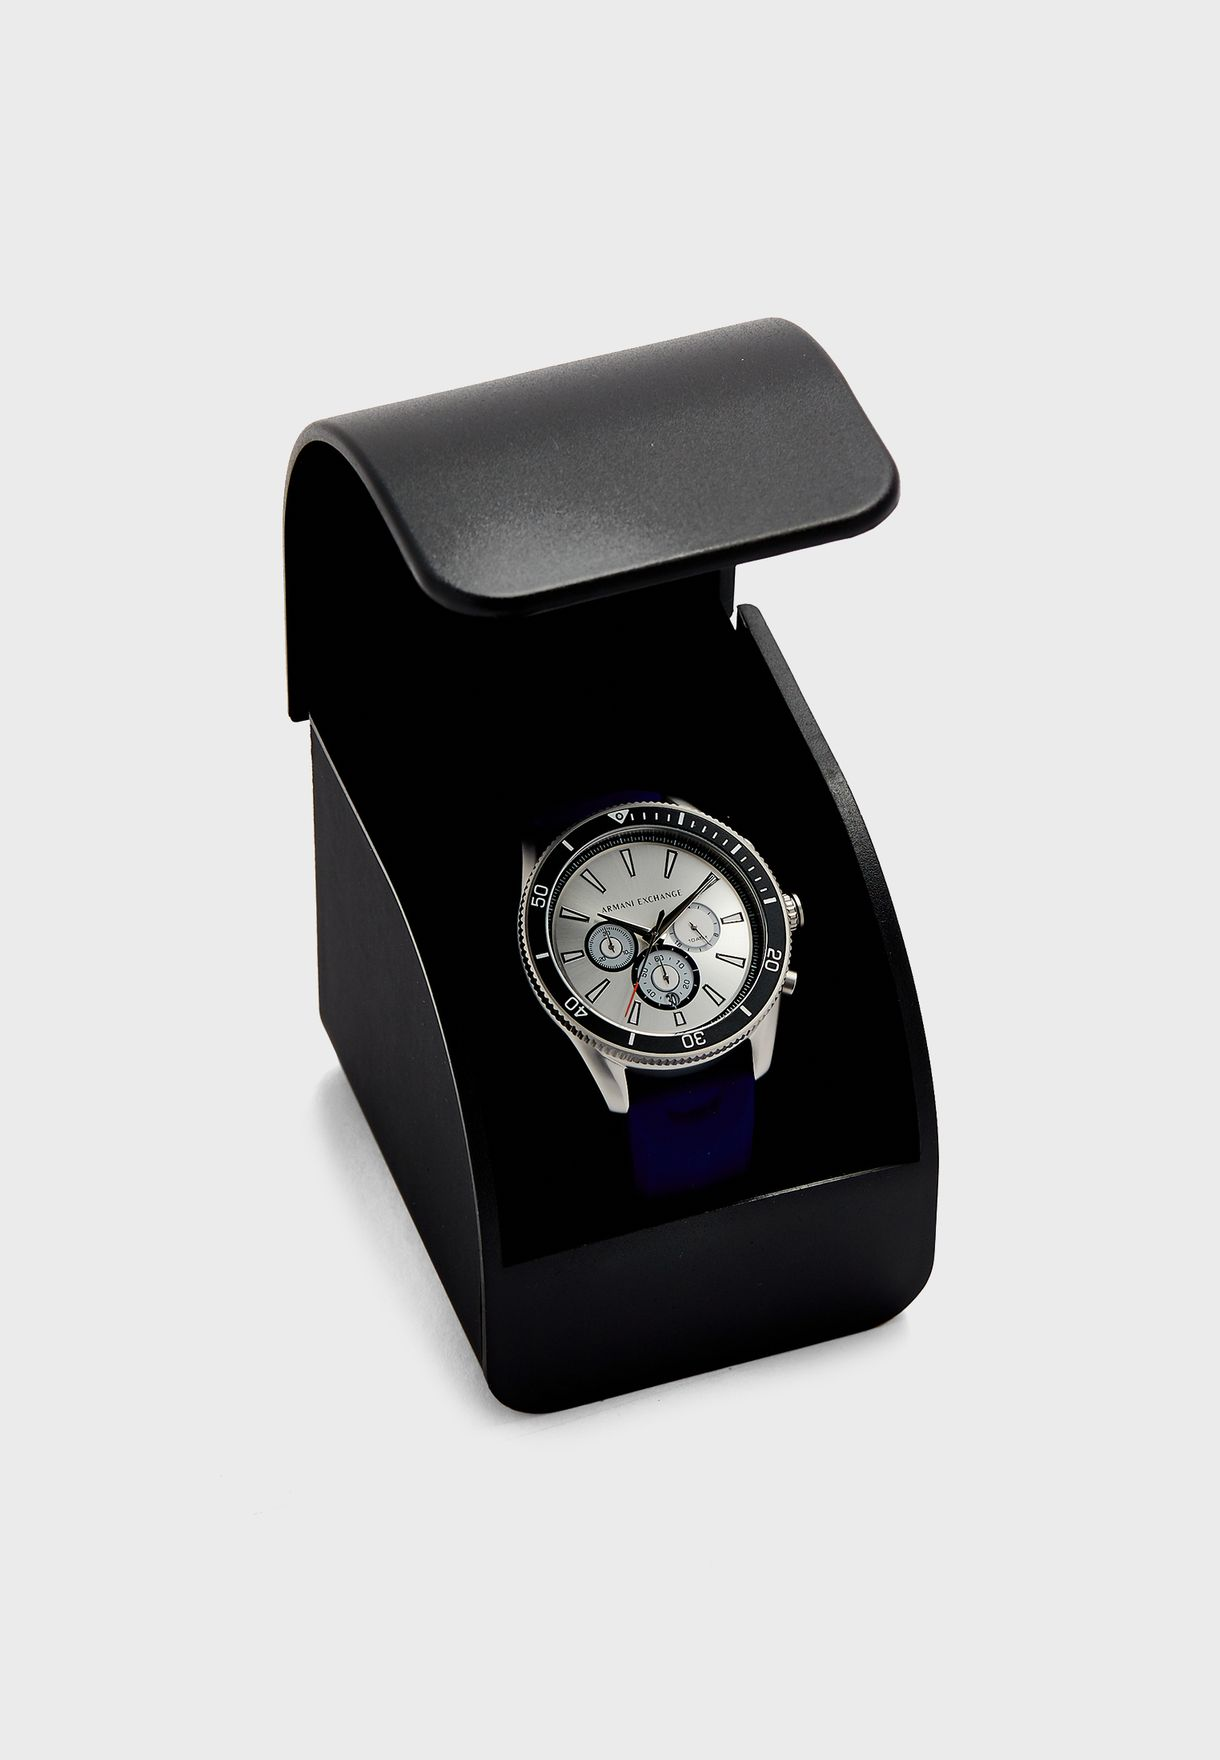 AX1838 Analog Watch